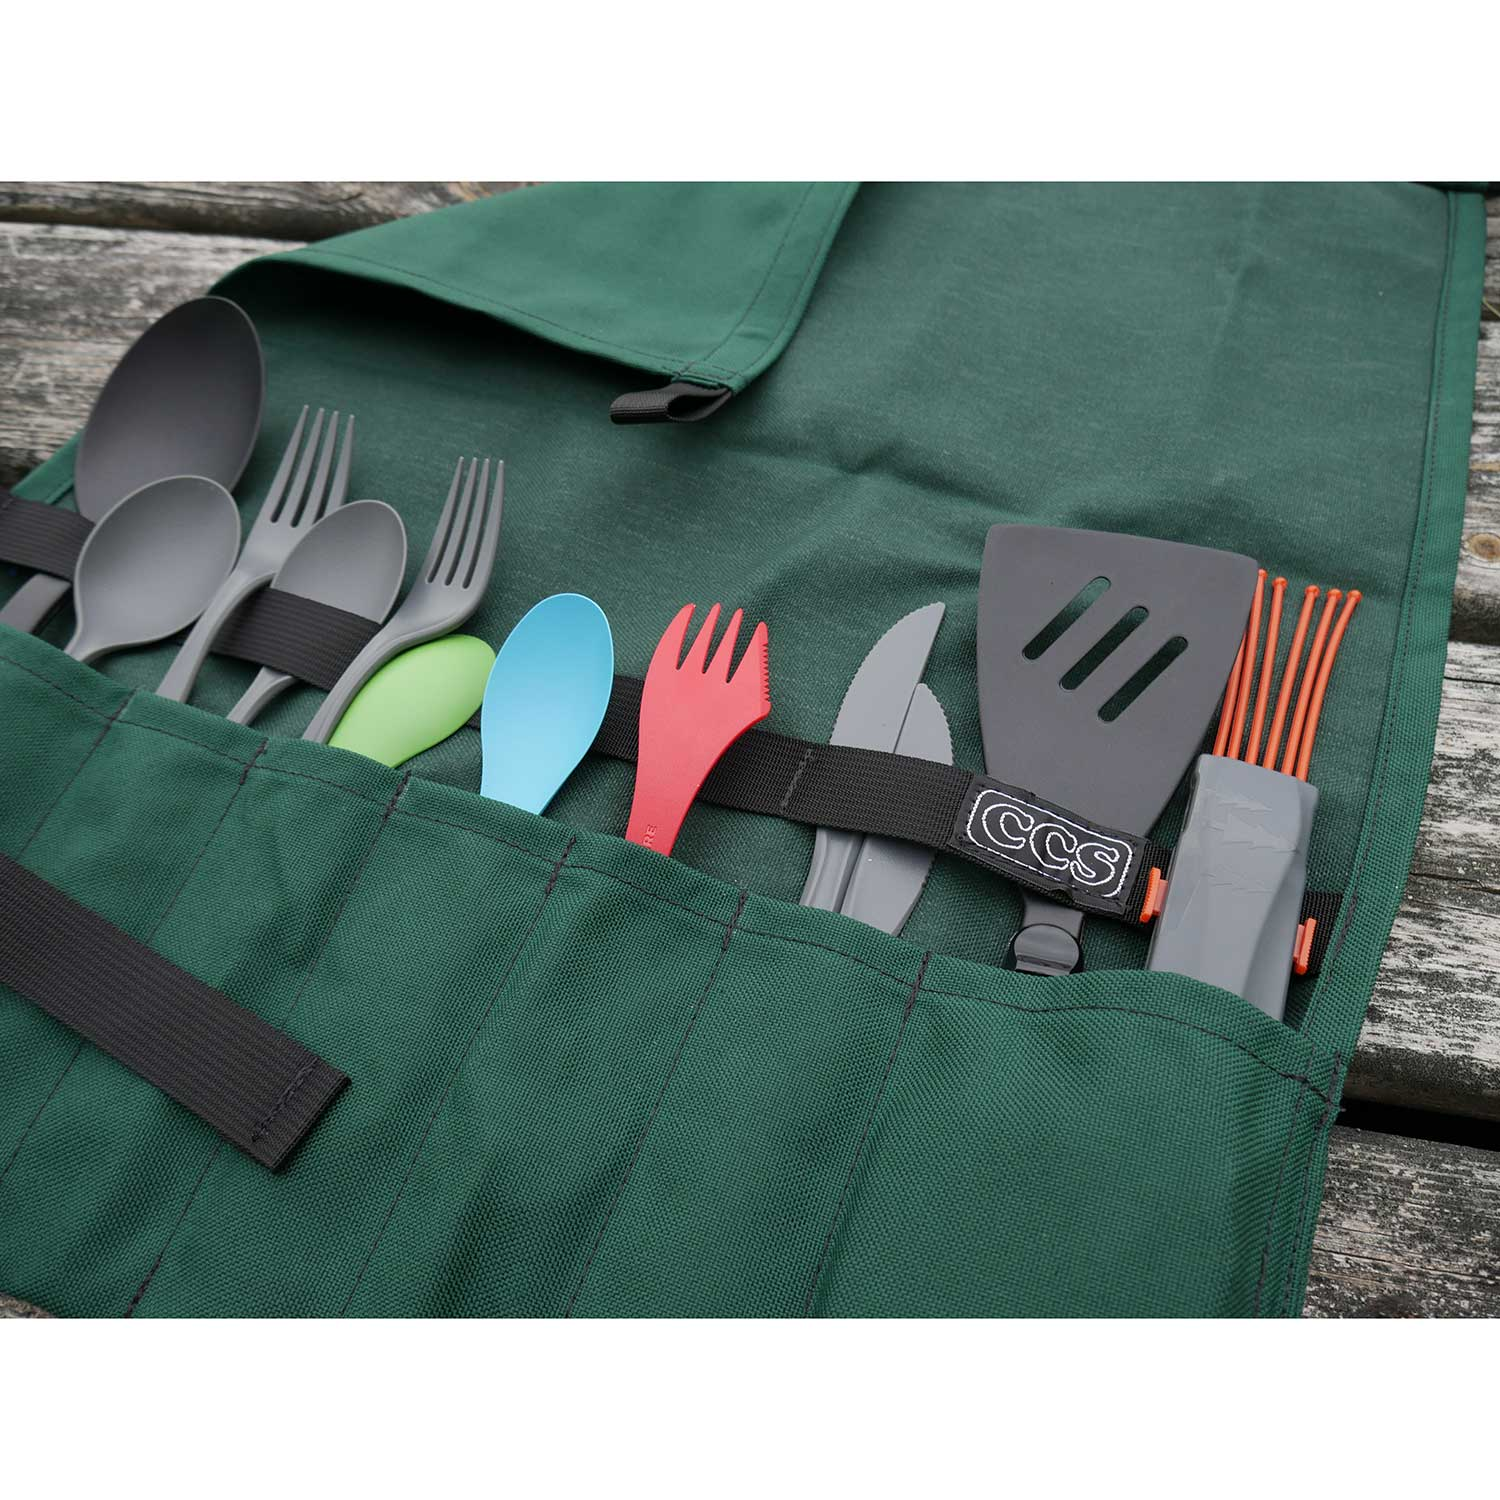 utensil roll up by ccs  camp kitchen organizer